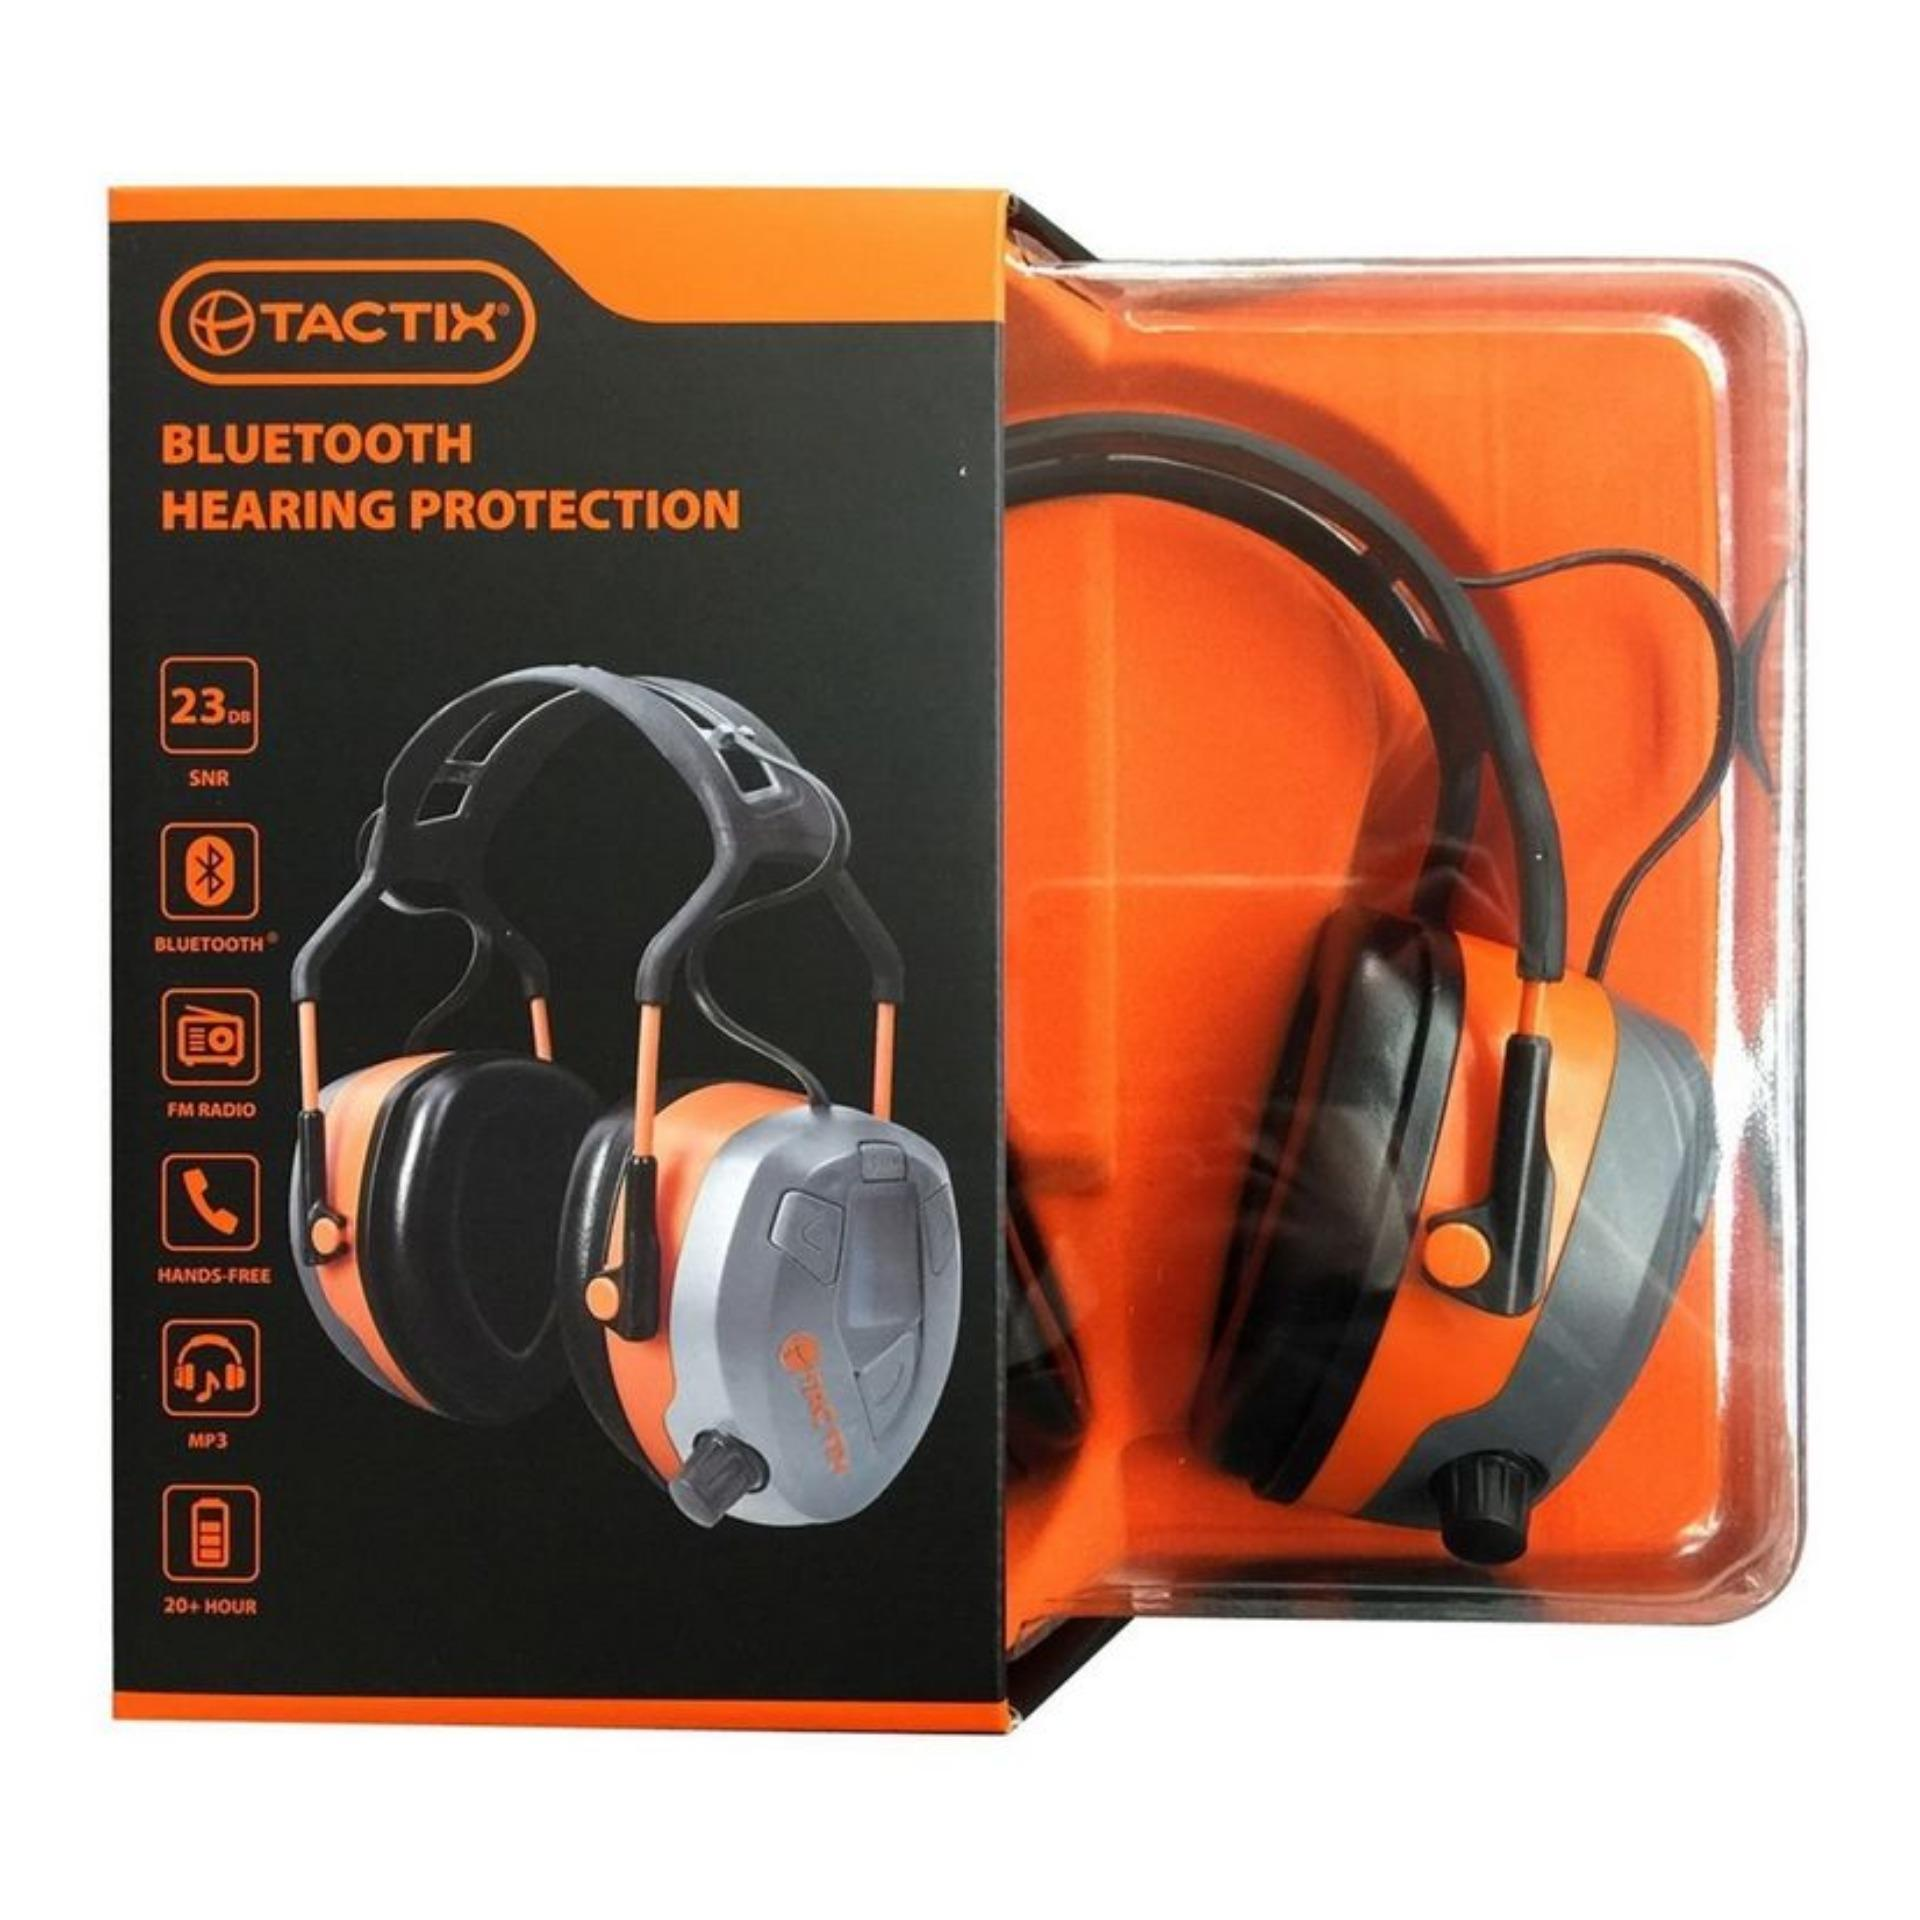 Tactix Bluetooth Earmuff Hearing Protection with FM Radio